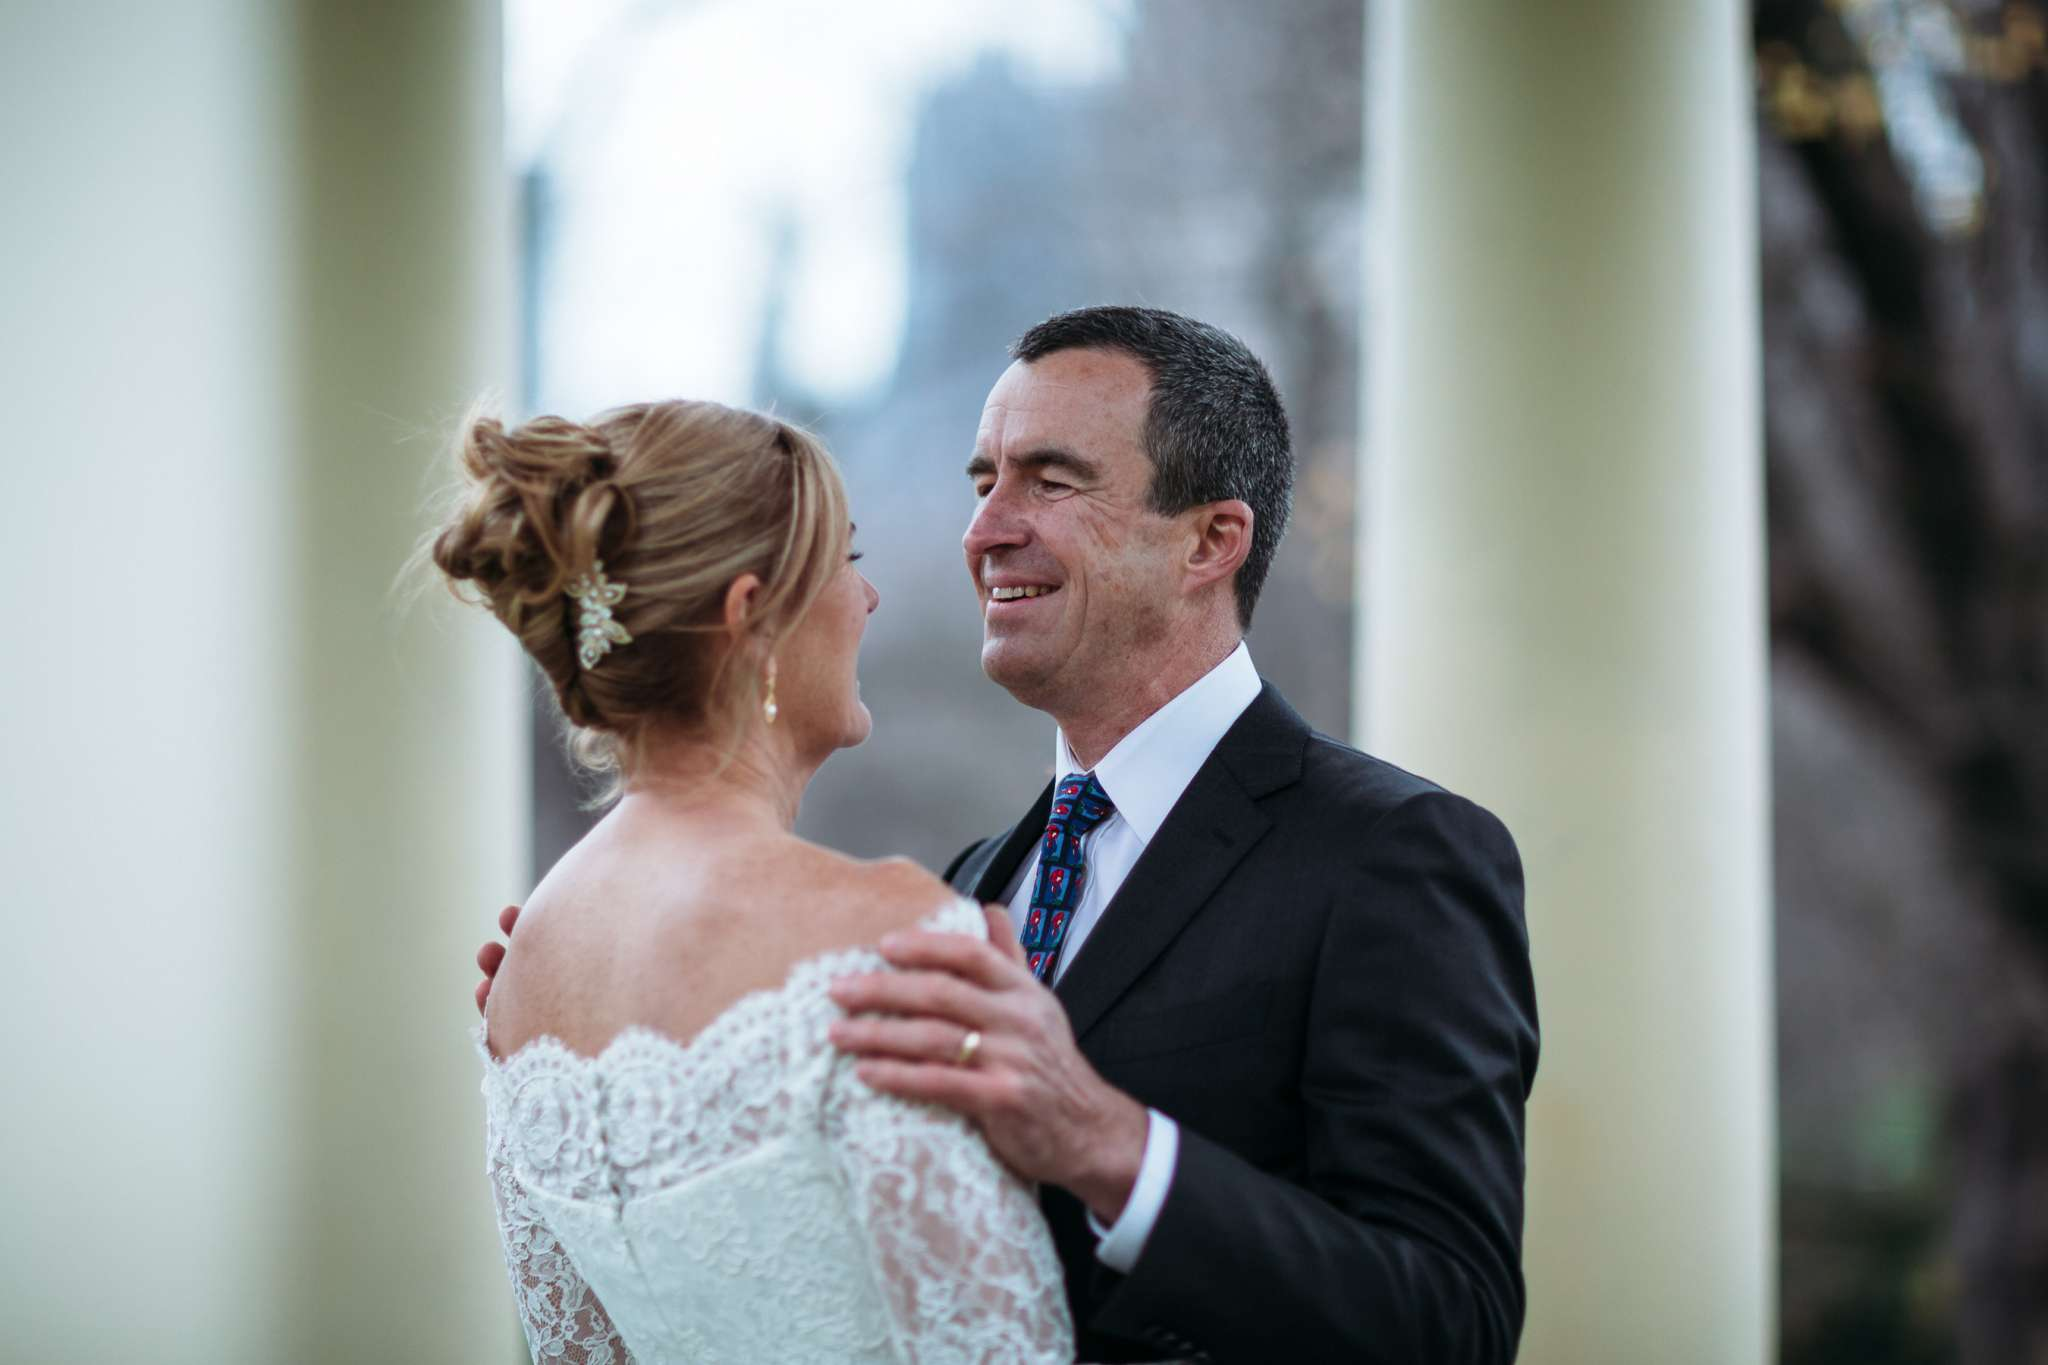 Wedding Photography Melbourne - Sharon & Peter 261